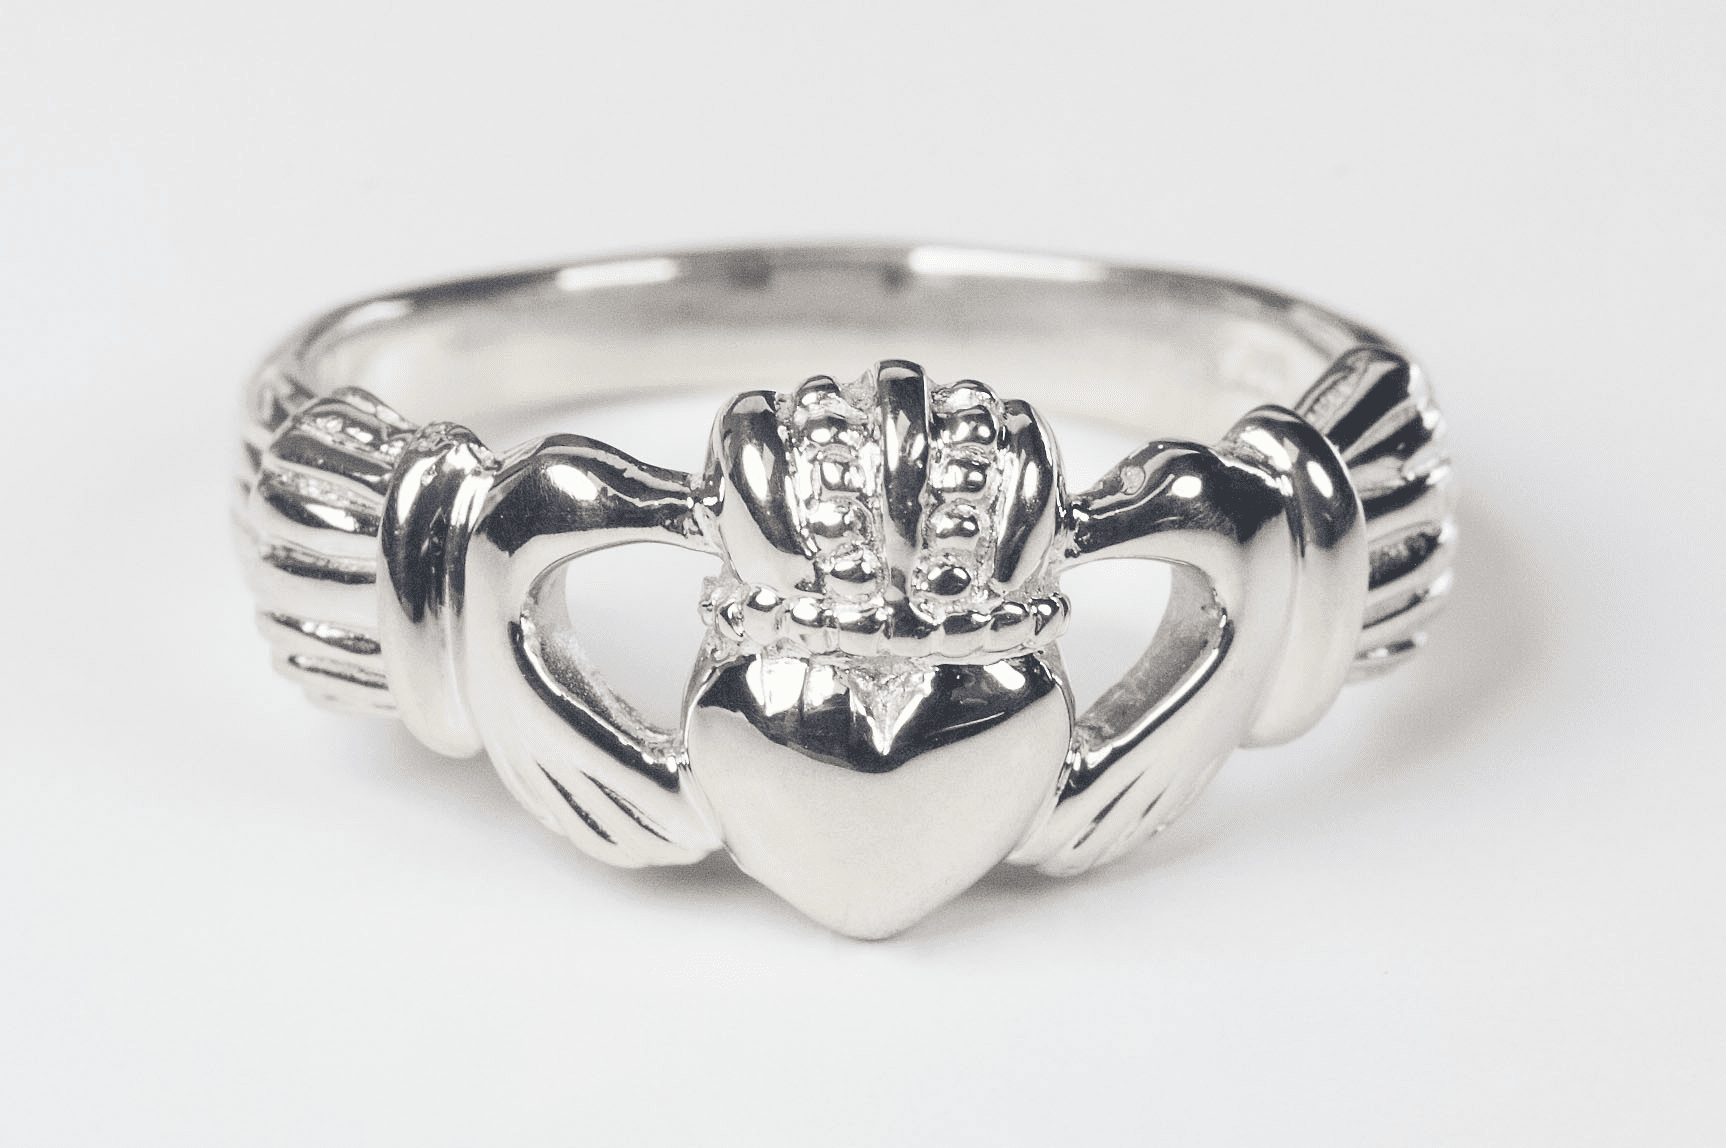 Bliss Men's and Women's Sterling Silver Irish Claddagh Ring